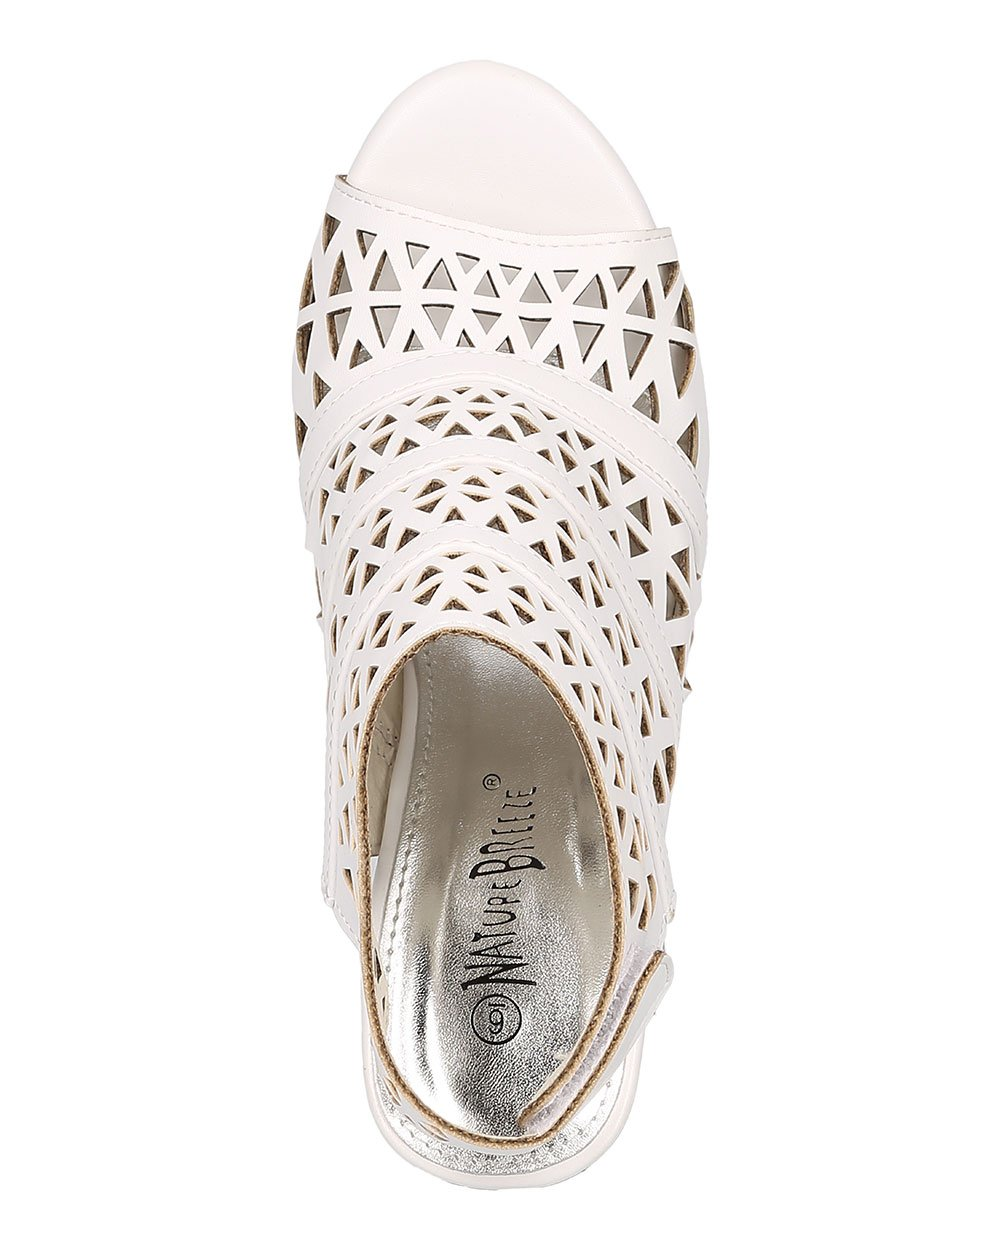 Women Leatherette Peep Toe Perforated Chunky Heel Slingback Mule GG78 - White (Size: 6.5) by Nature Breeze (Image #4)